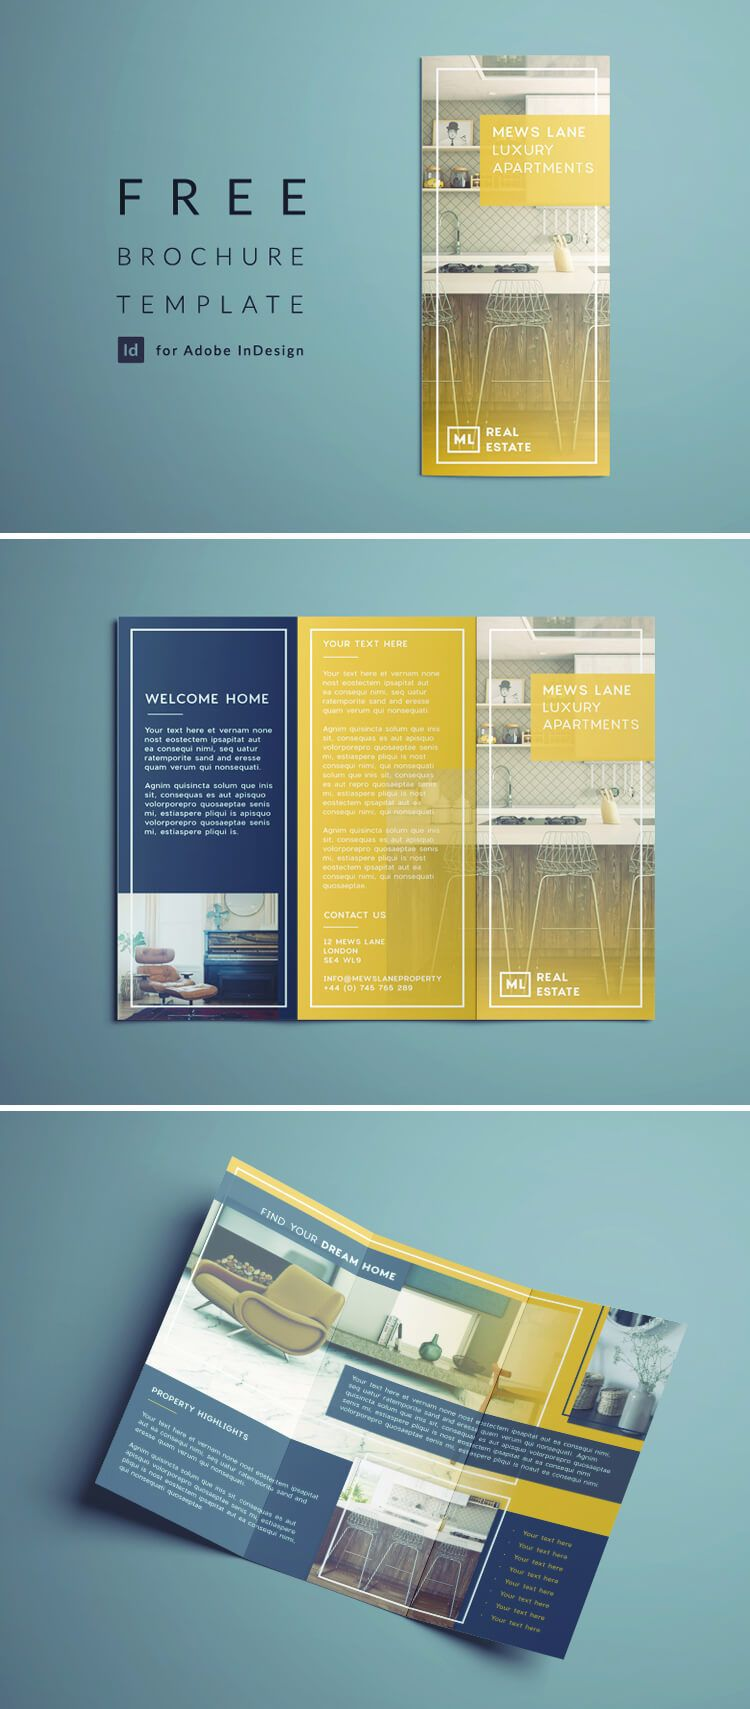 002 Frightening Indesign Tri Fold Brochure Template High Definition  Free Adobe 11x17